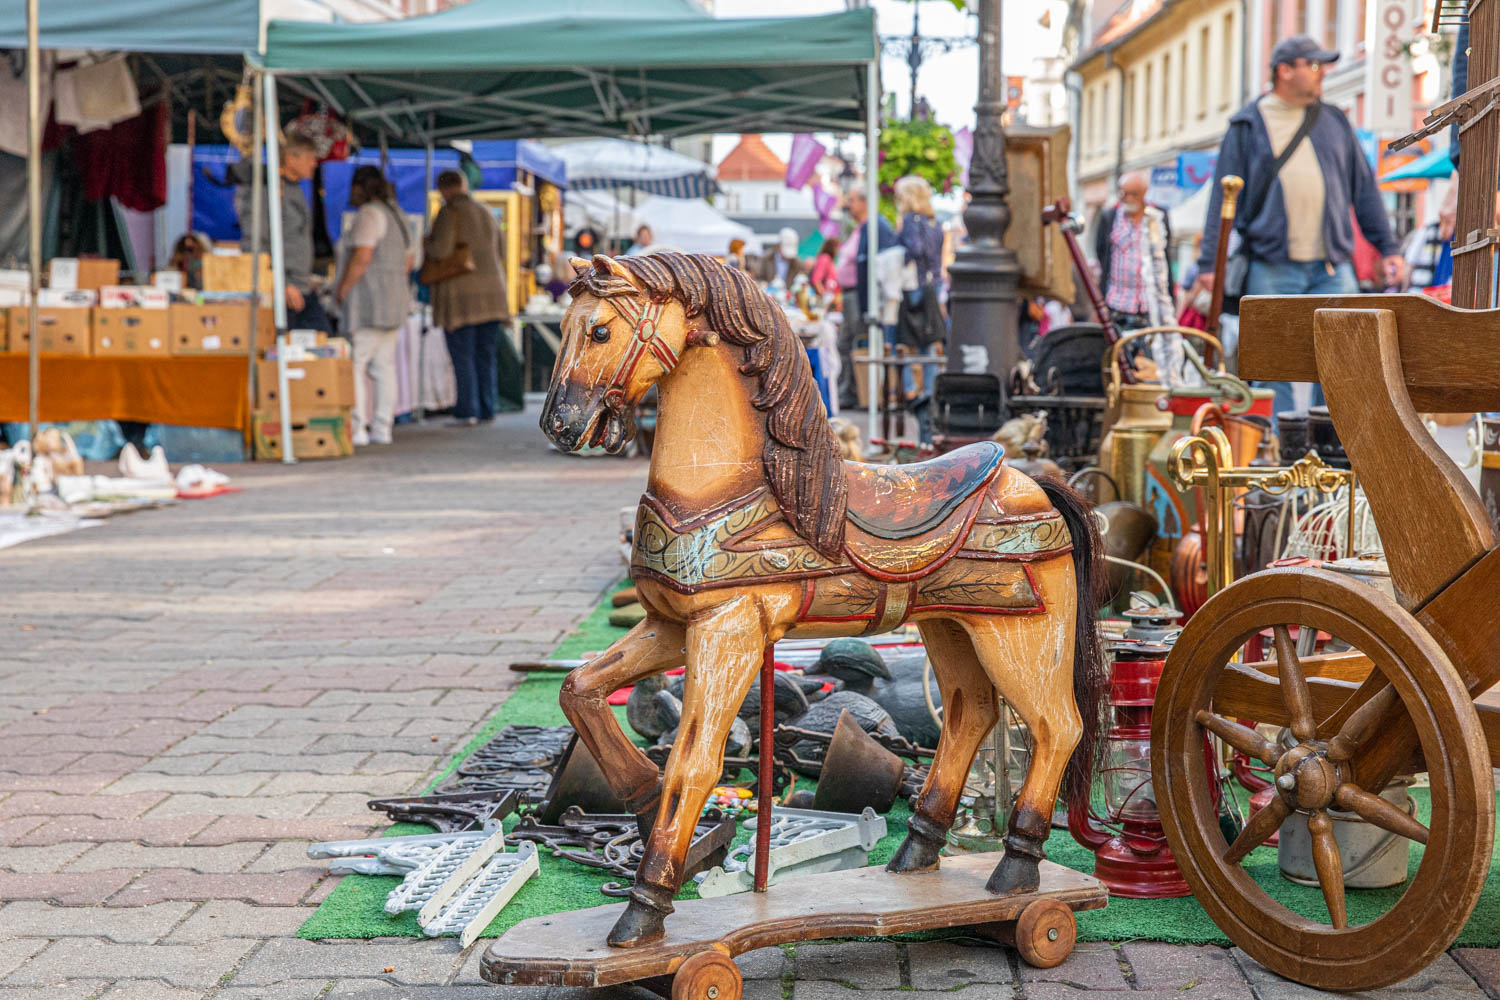 a wooden horse for sale at the Market at the wine festival in Poland